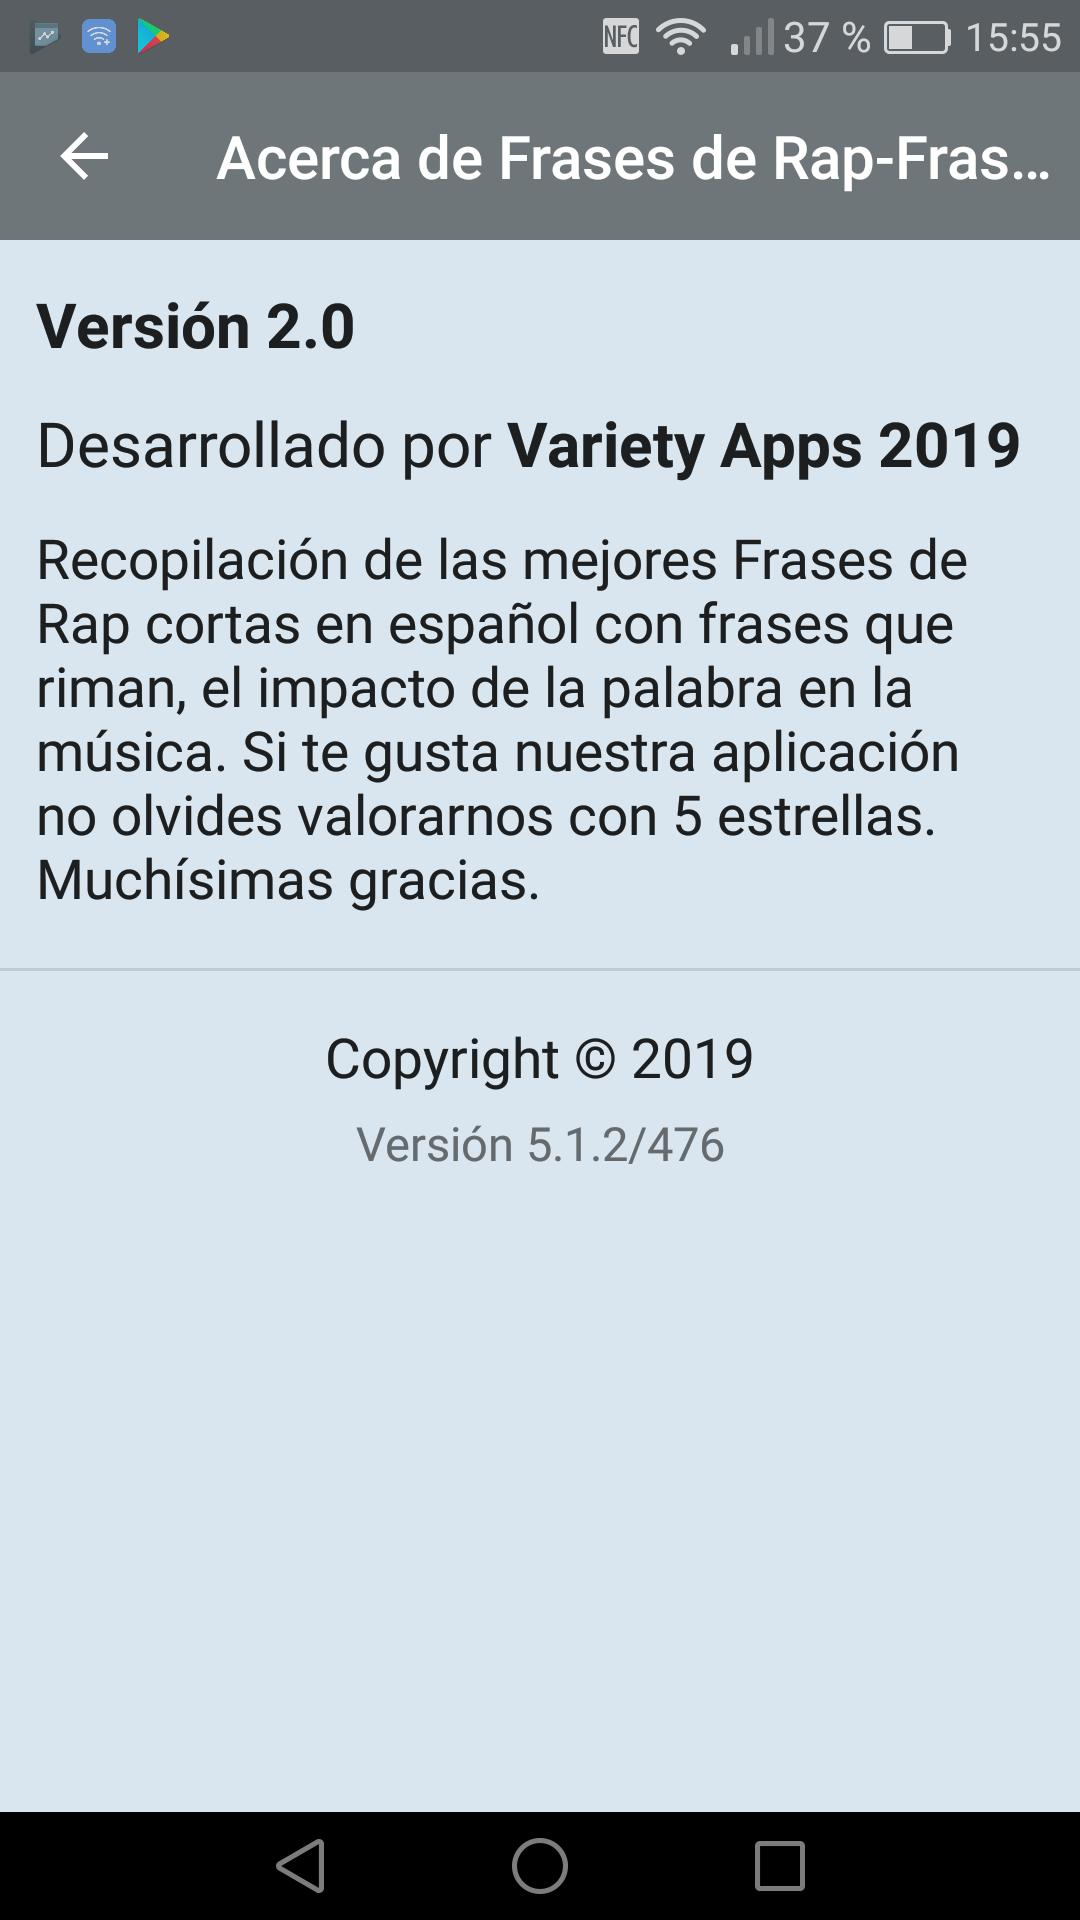 Frases De Rap Frases Que Riman For Android Apk Download